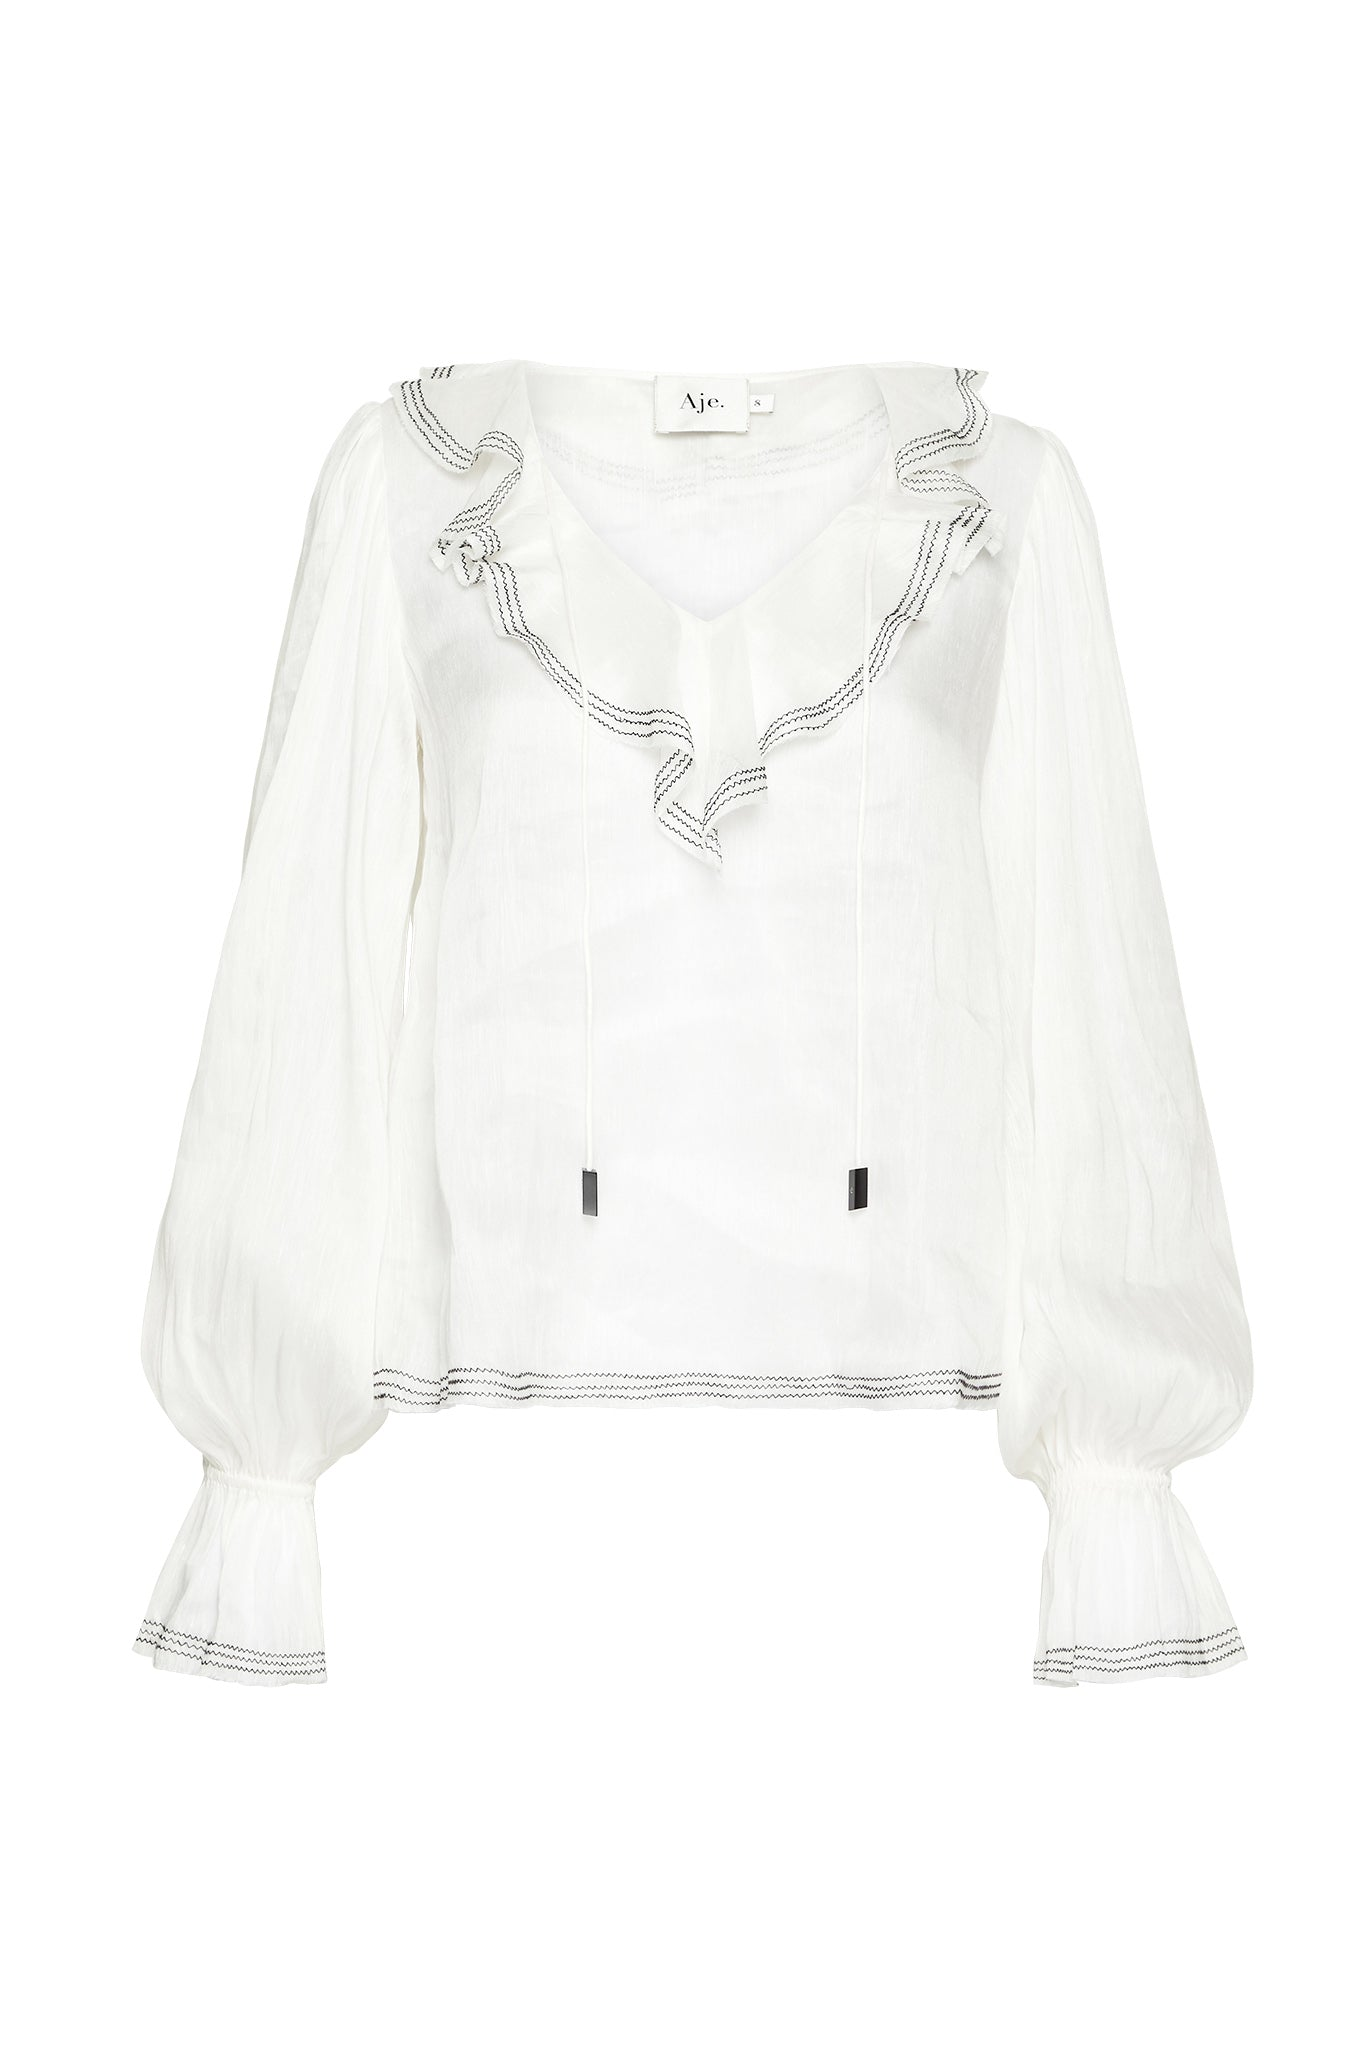 Banksia Frill Blouse Product View